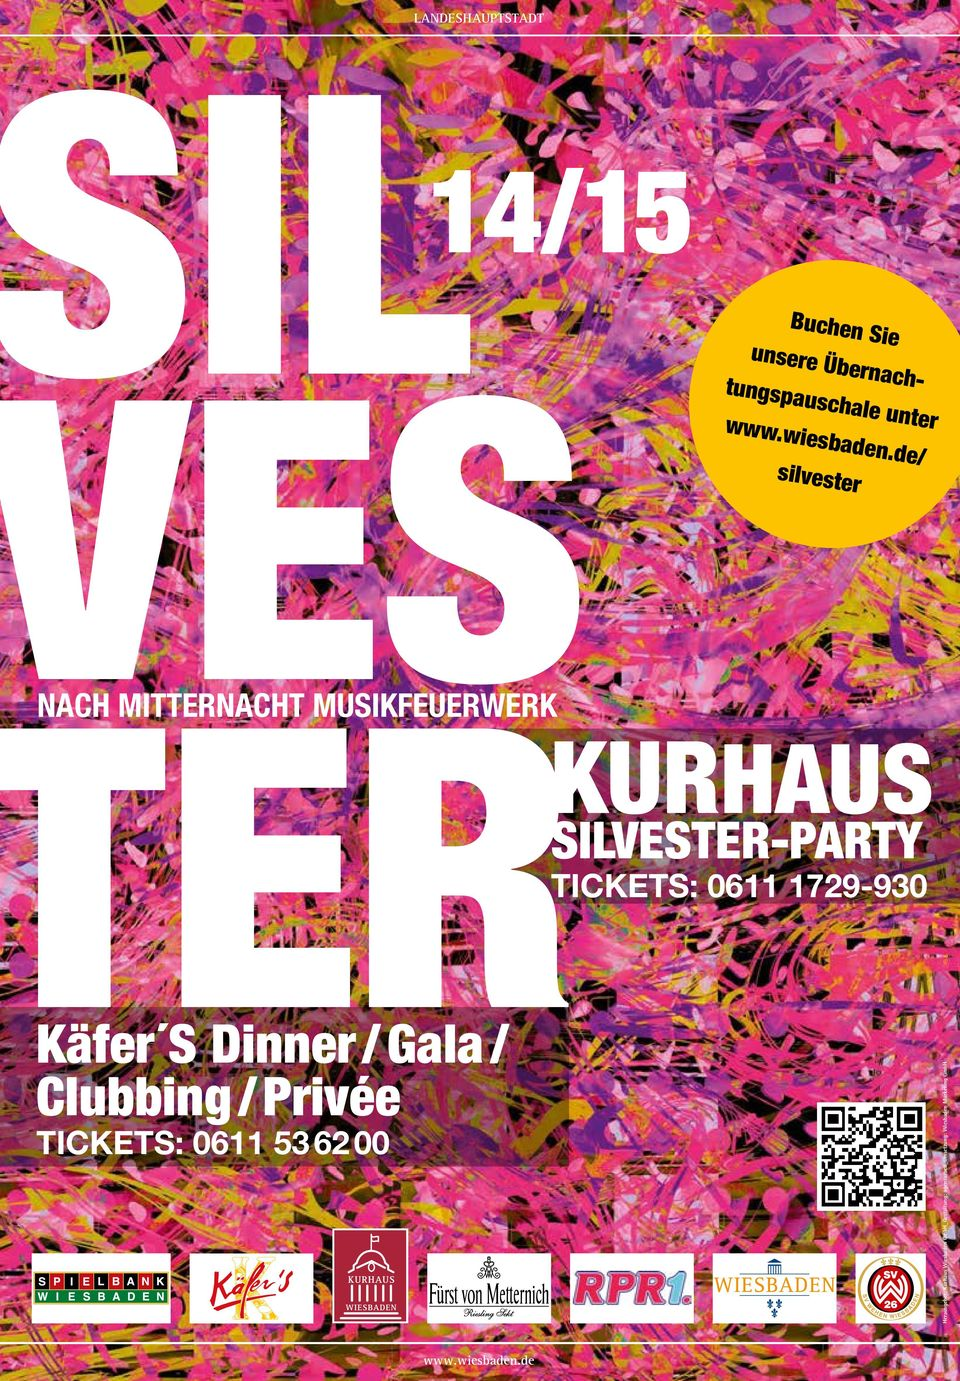 1729-930 Käfer S Dinner / Gala / Clubbing / Privée TickeTs: 0611 53 62 00 Herausgeber: